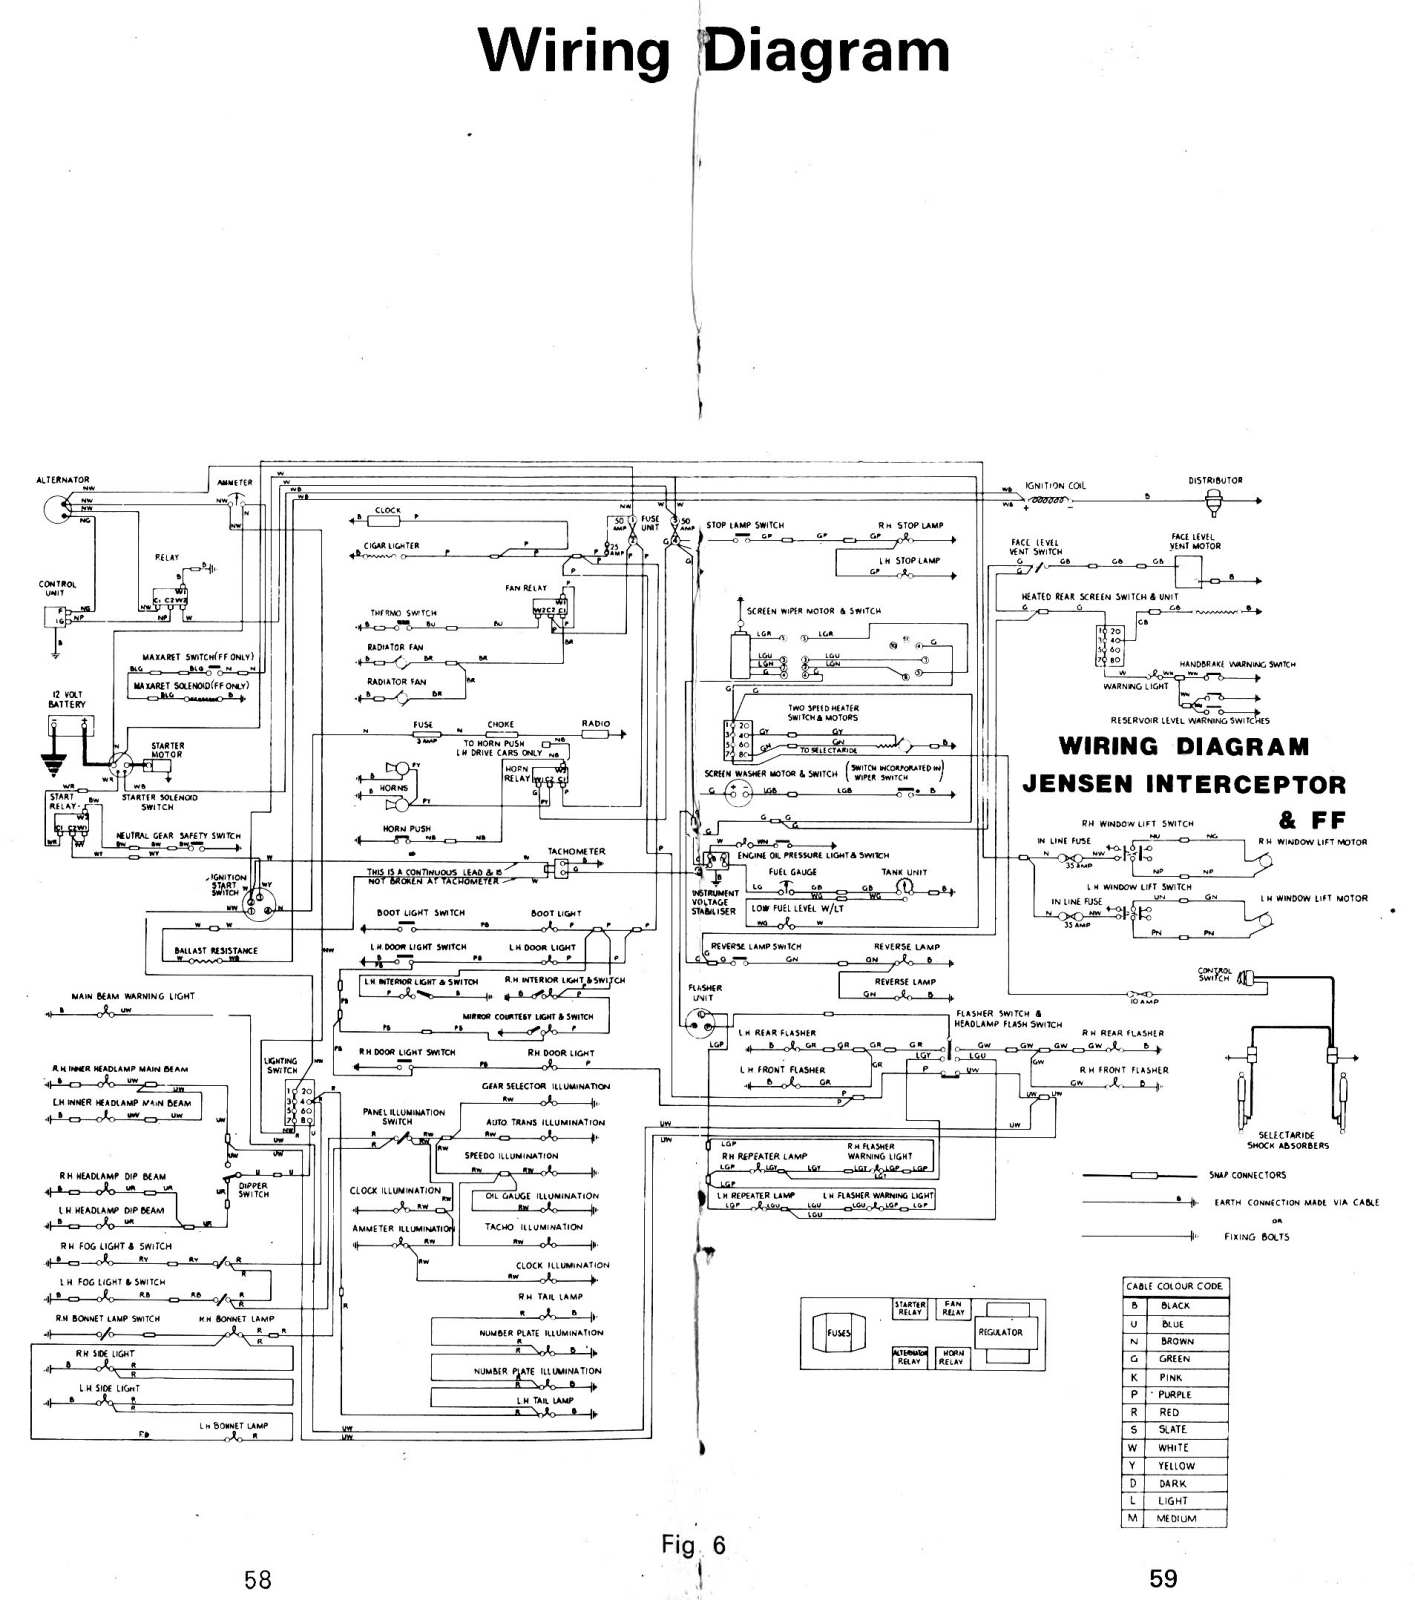 Jensen Interceptor Wiring Diagram Free Download Uv10 Electrical System The Museum